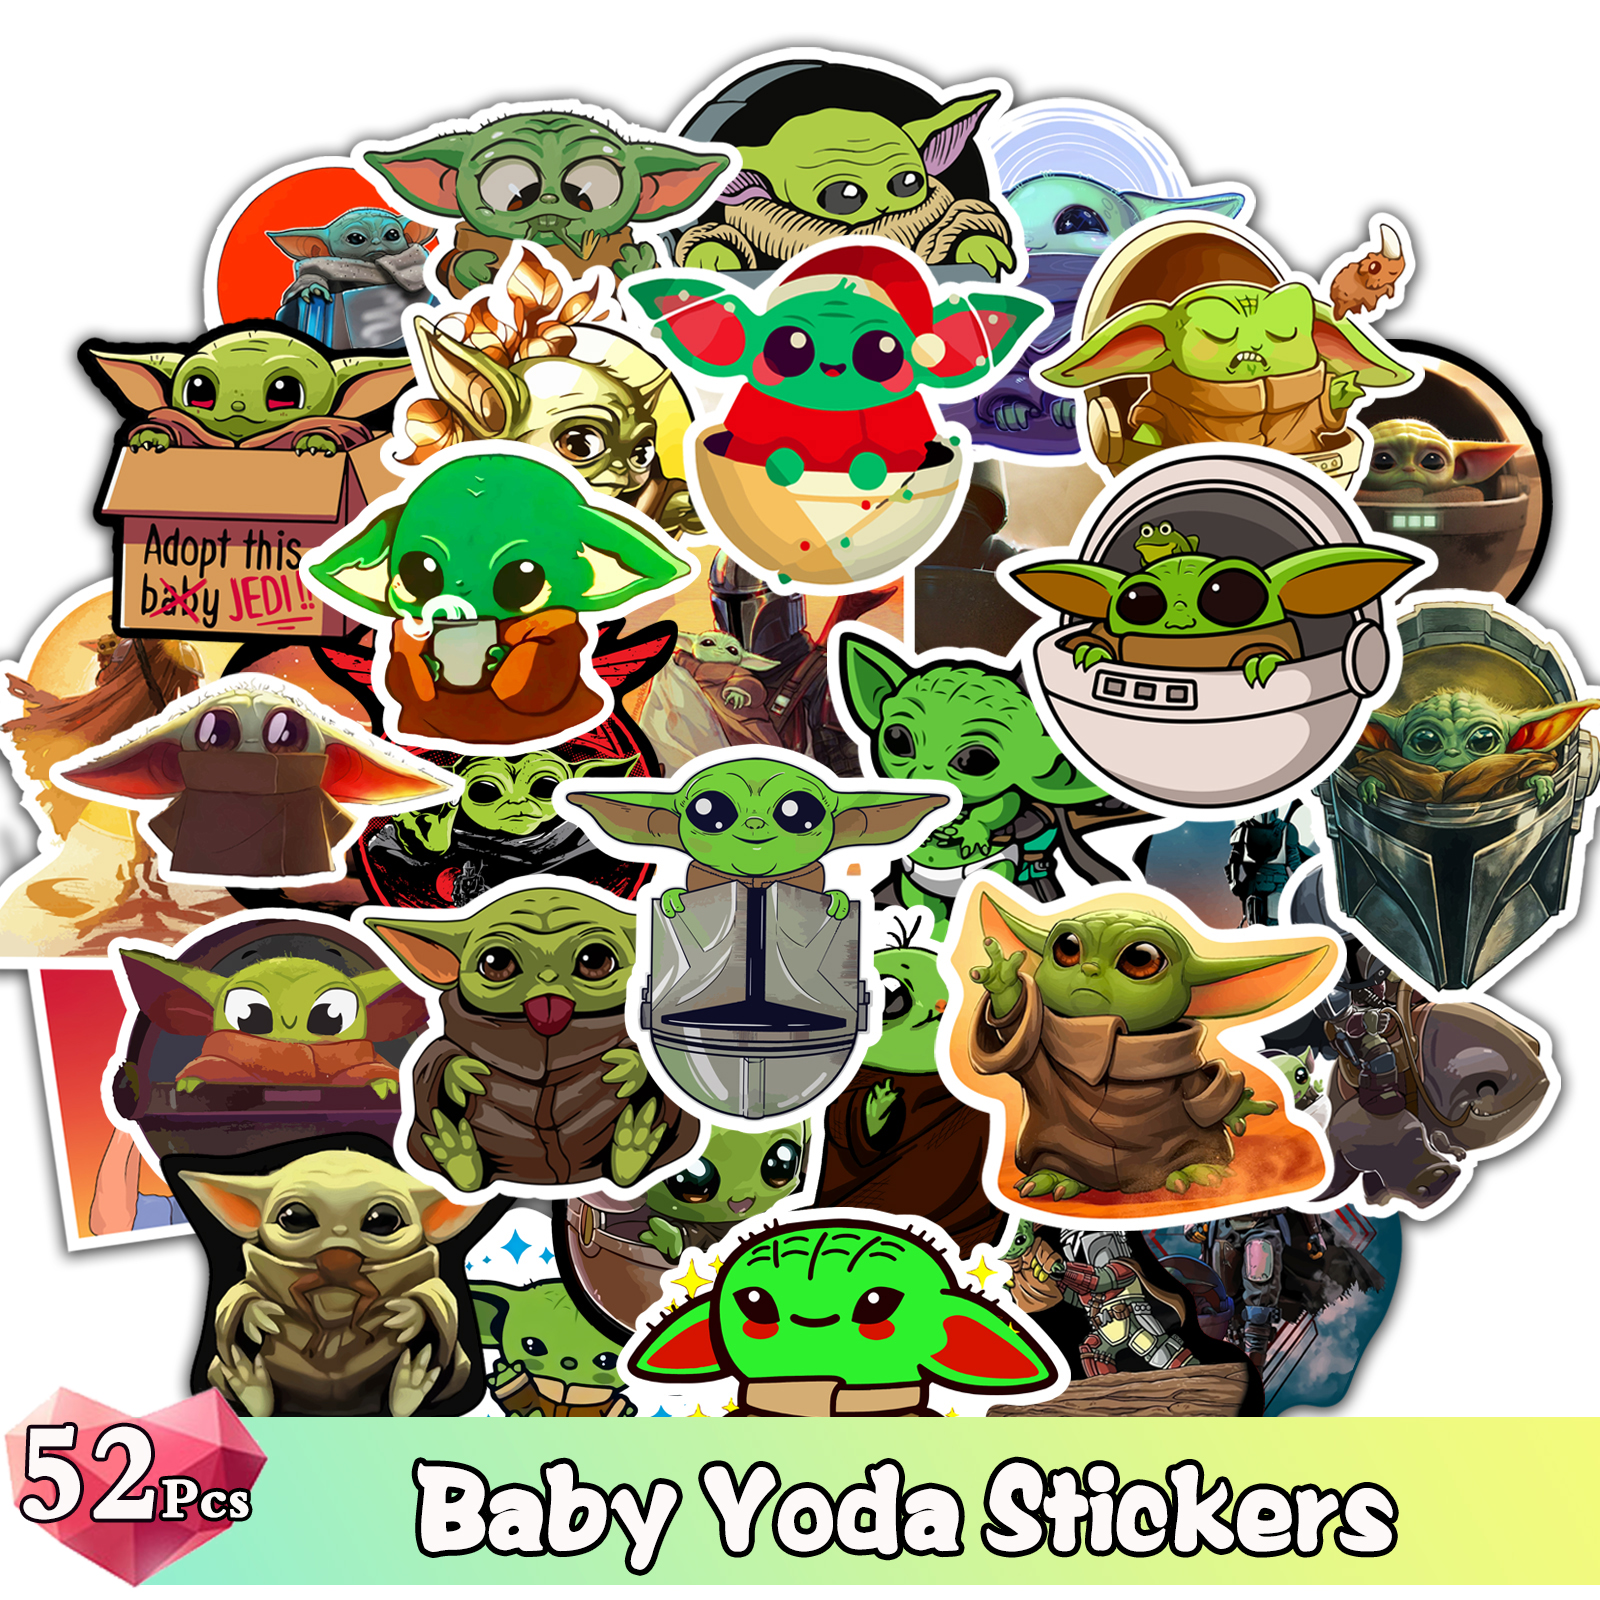 52 Pcs Baby Yoda Stickers For Star Wars Sticker For Skateboard Luggage Scrapbooking Laptop For The Mandalorian Cartoon Decal Toy